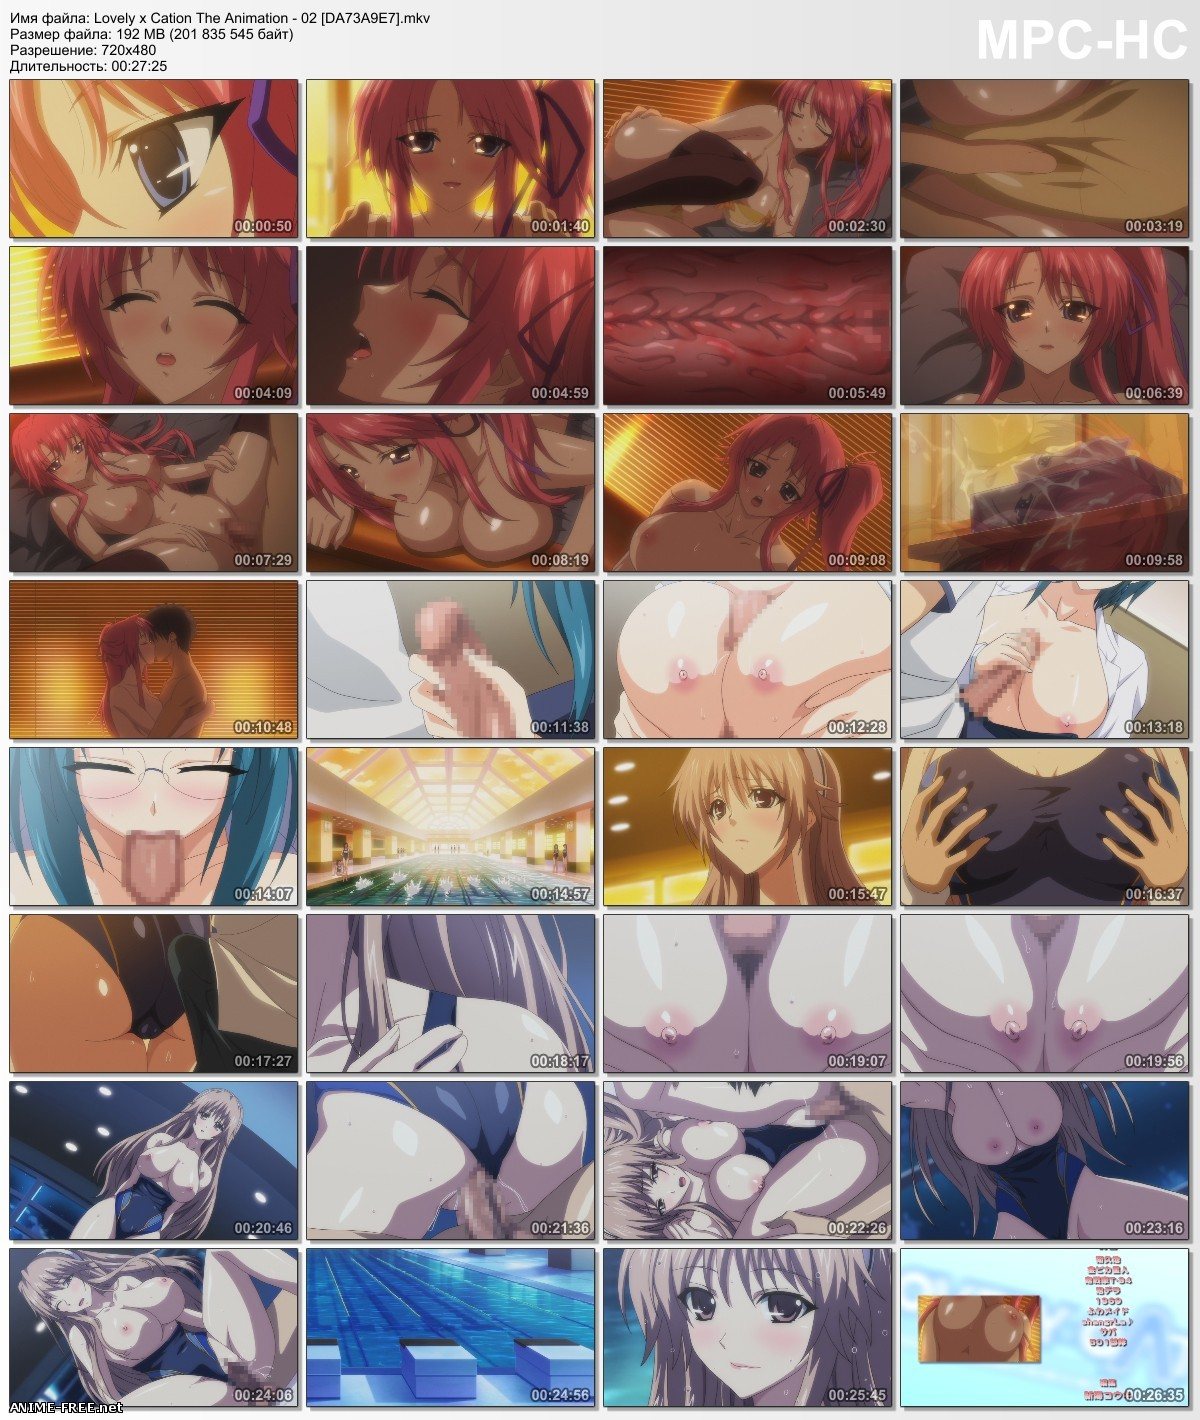 Lovely x Cation The Animation | Pretty x Cation The Animation 1&2 [JAP,ENG,RUS] Anime Hentai